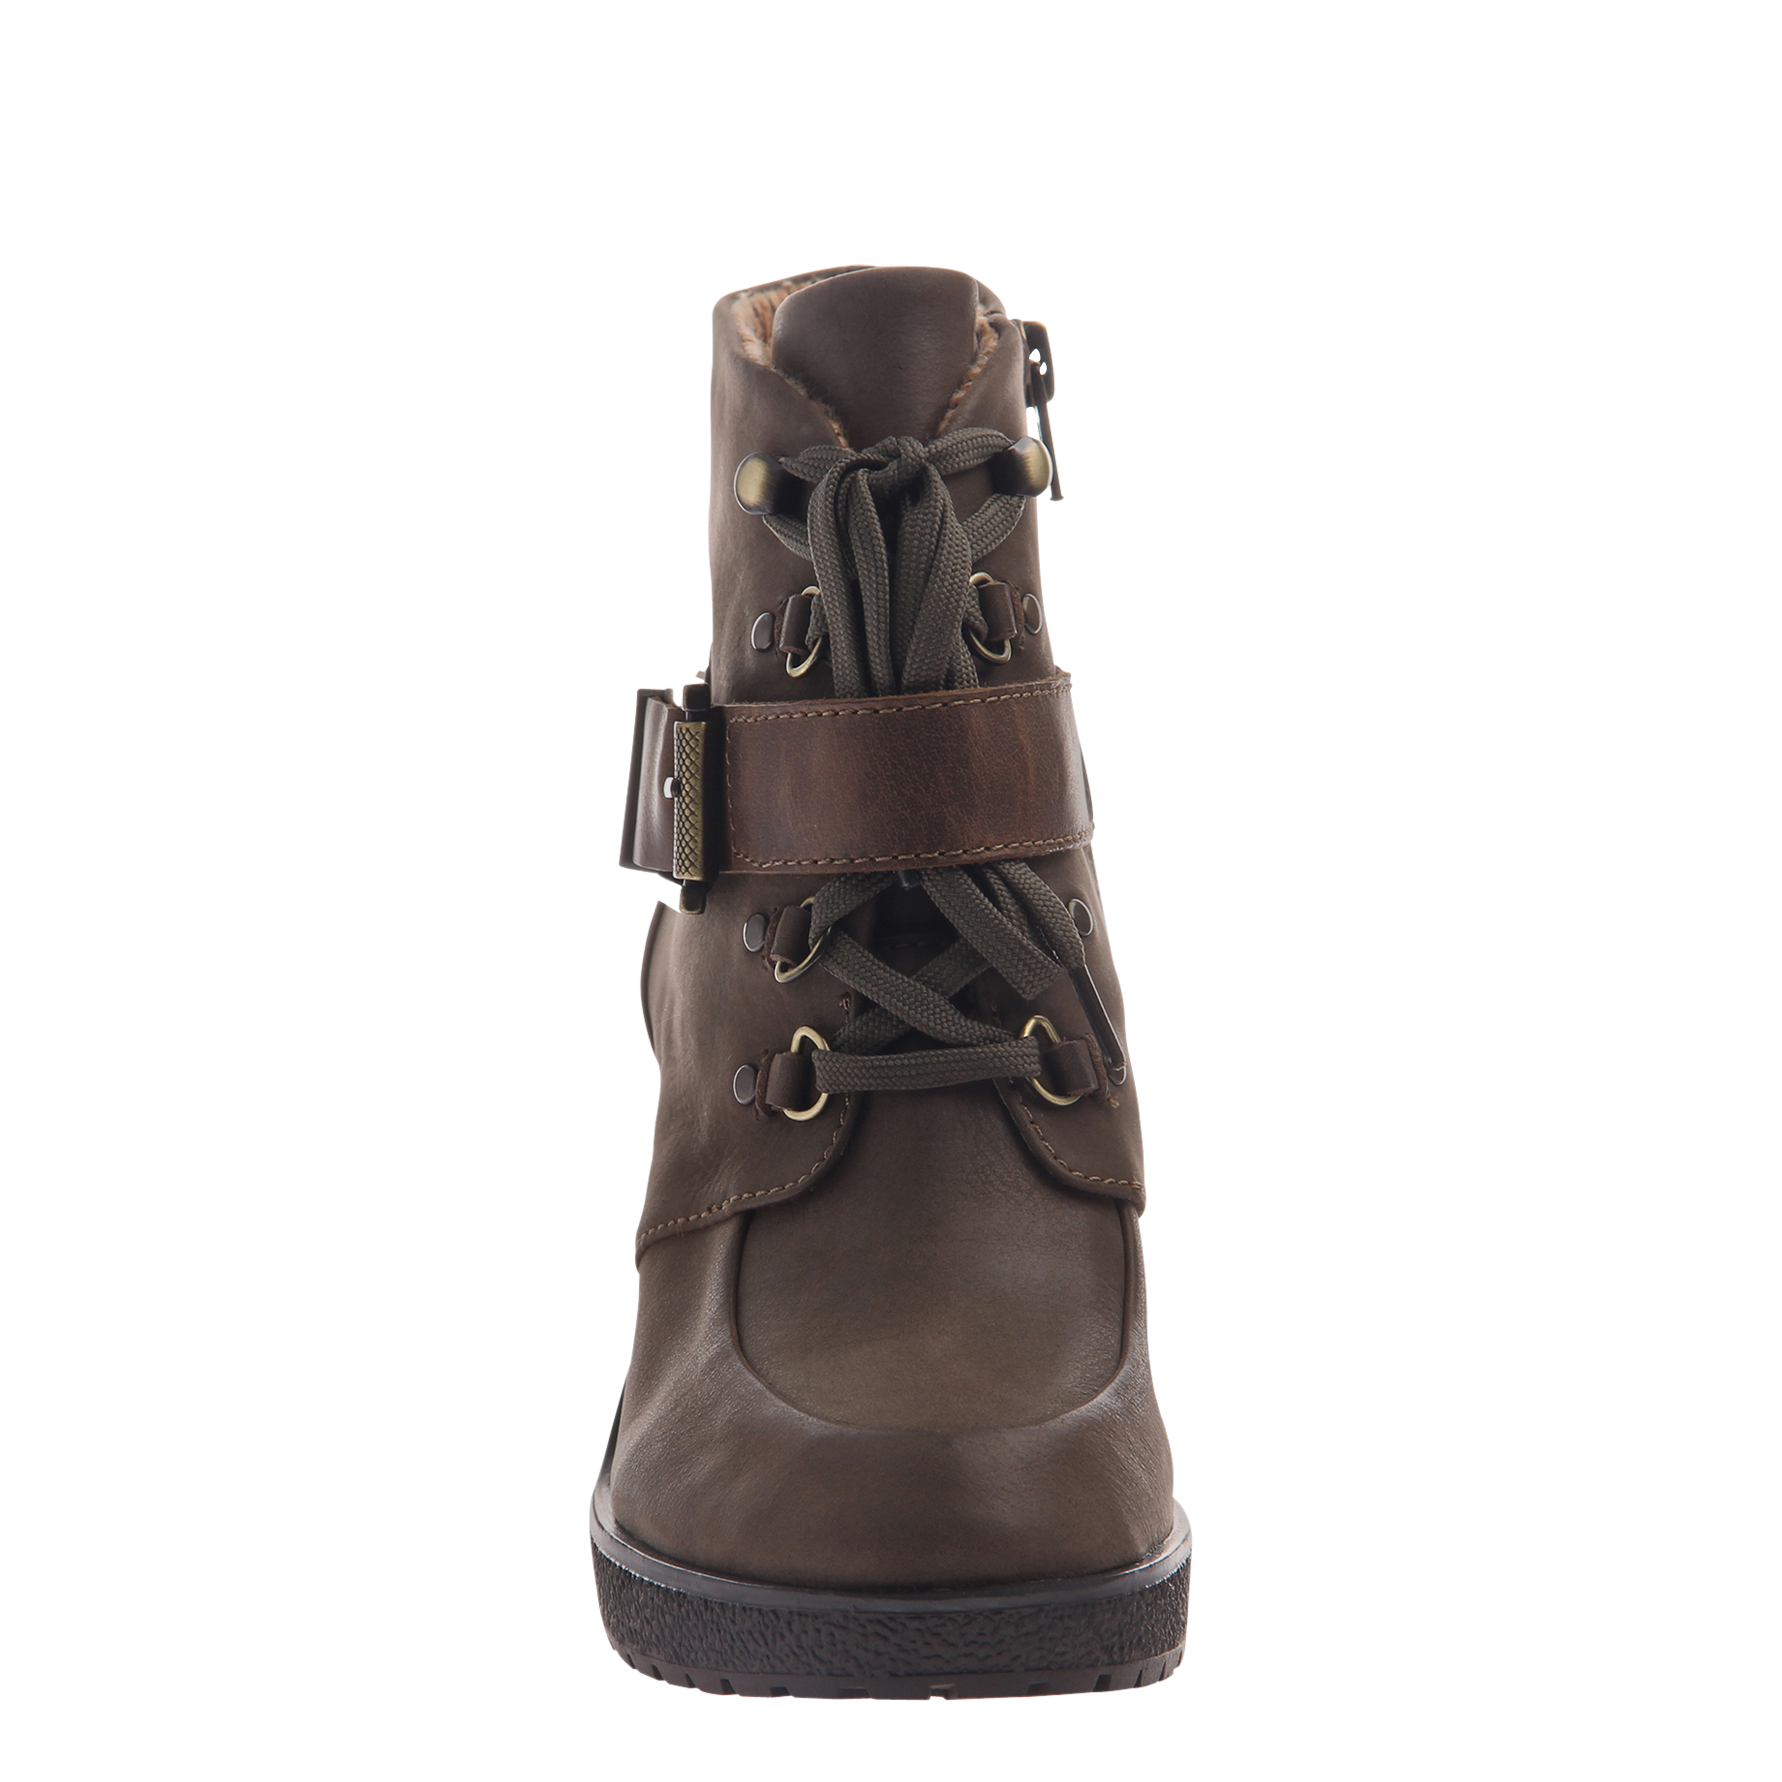 Womens ankle boot Sylvie in mint front view